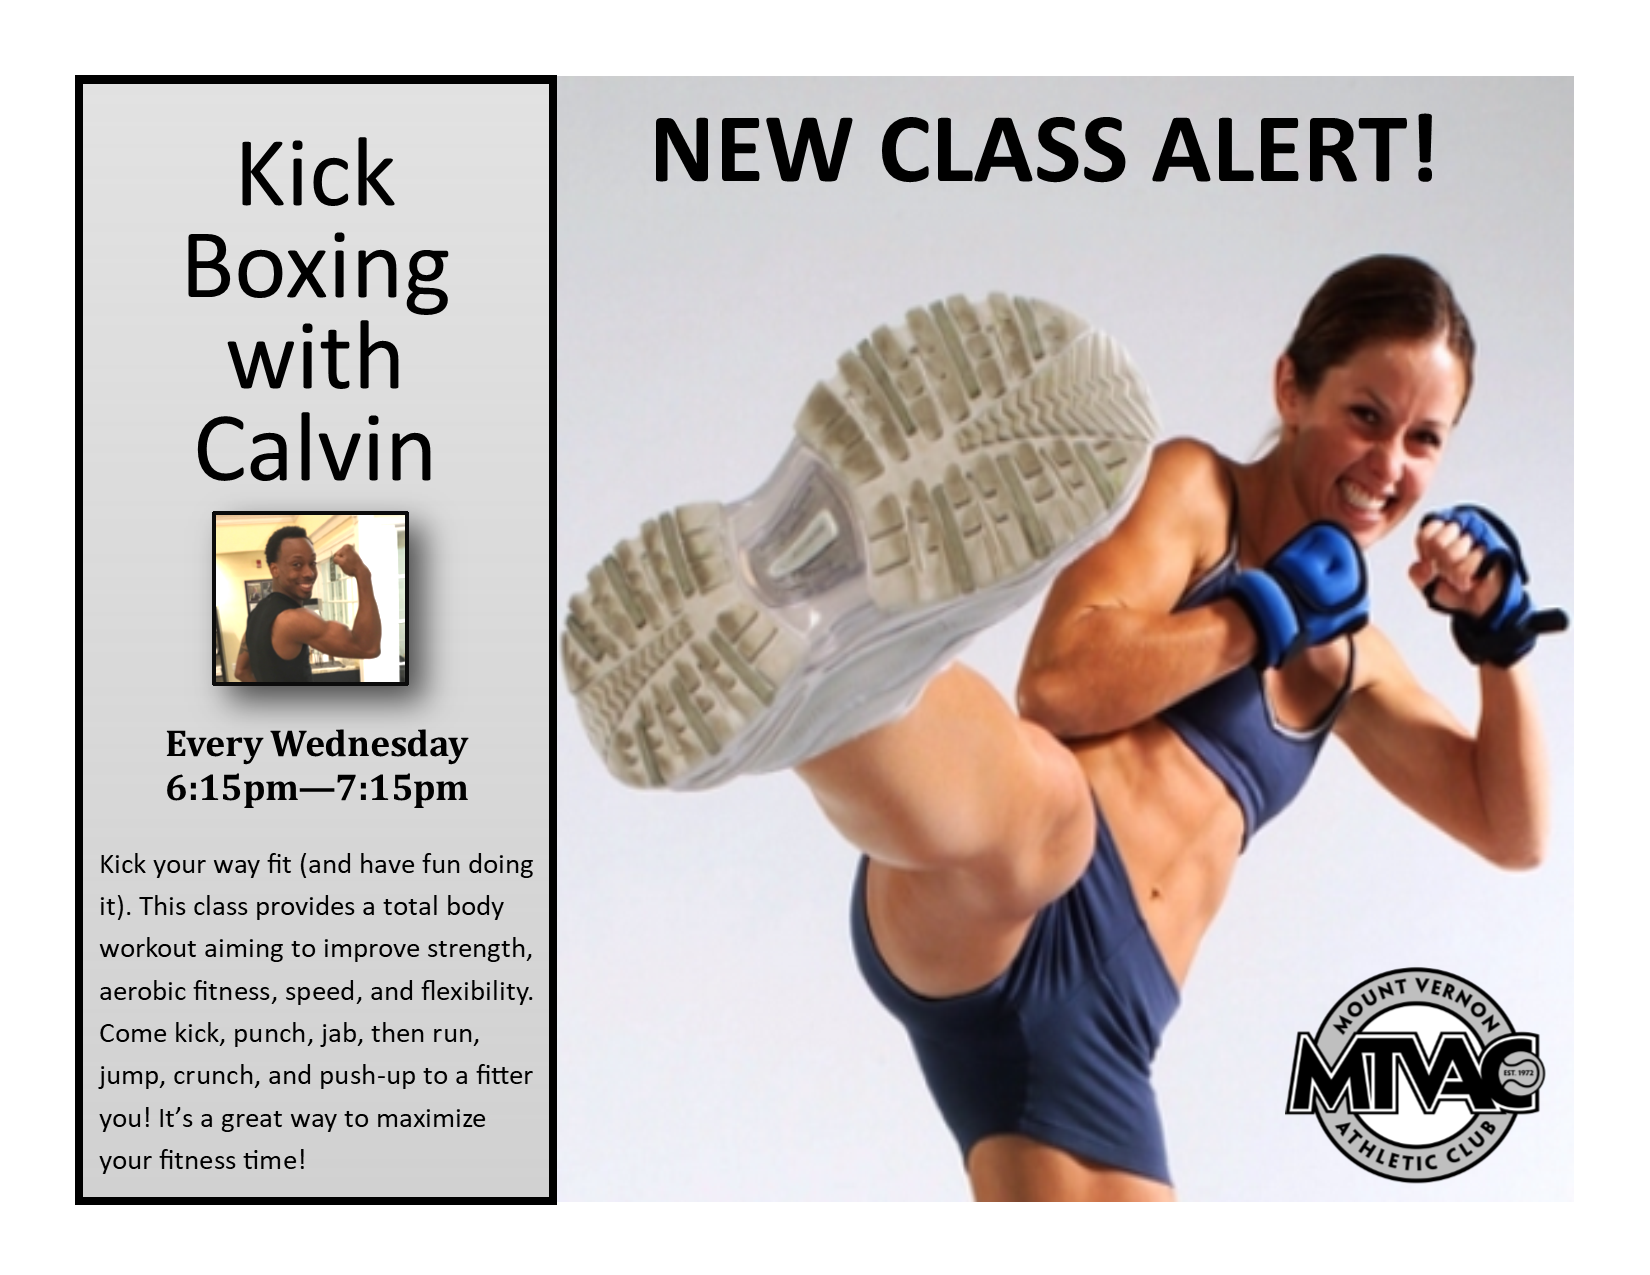 Mount Vernon Athletic Club Mtvac In 2020 Kickboxing Classes Aerobics Workout Fitness Body